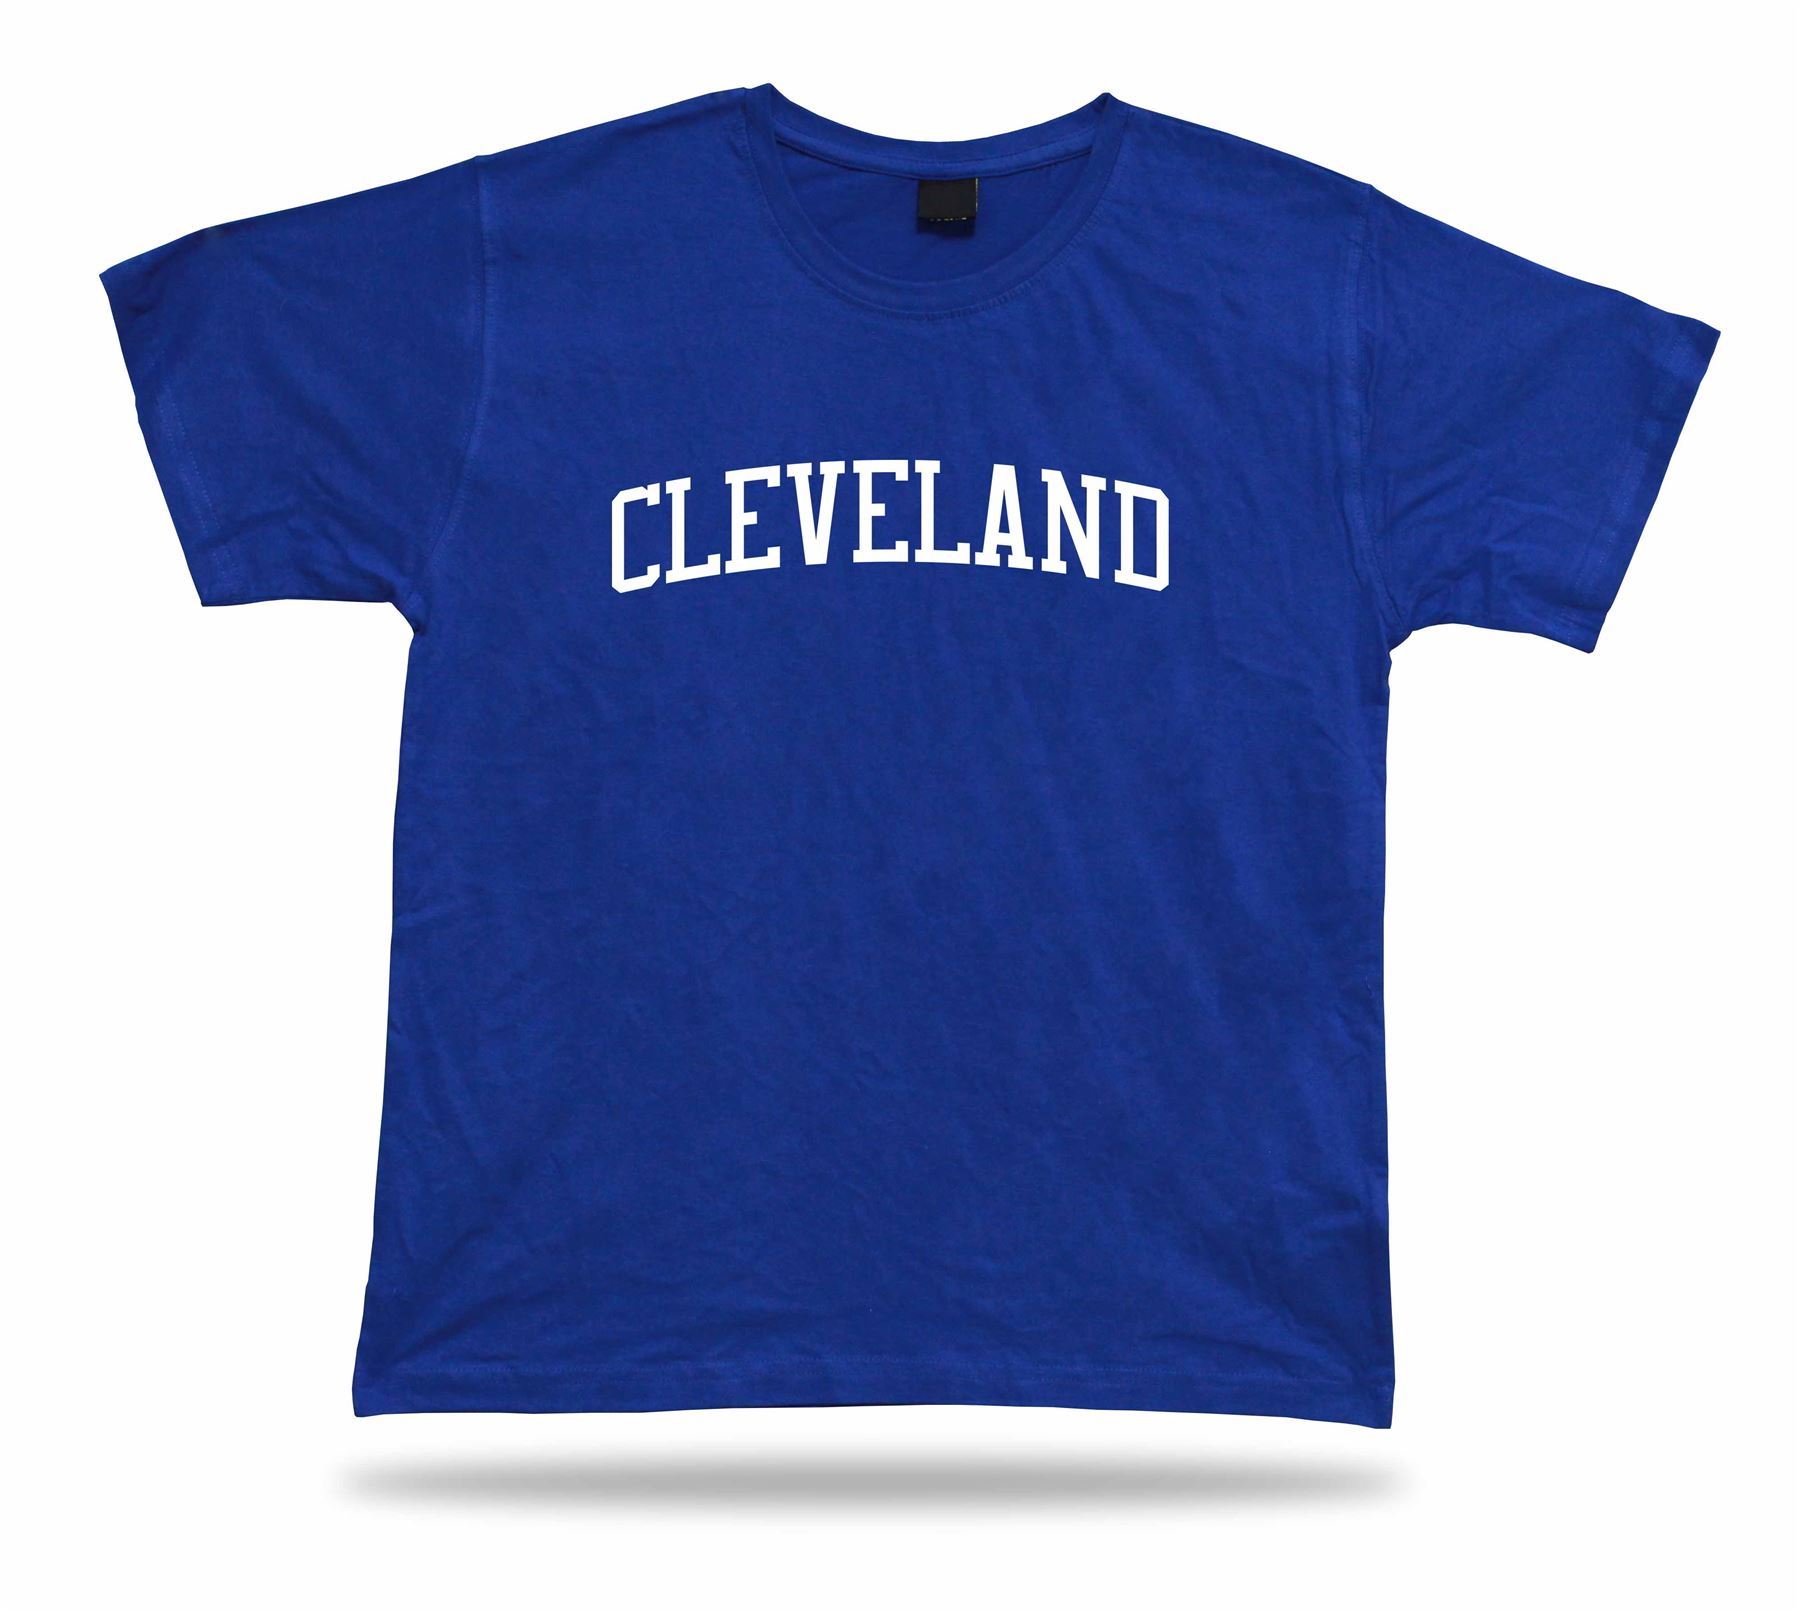 Clothing stores in cleveland ohio